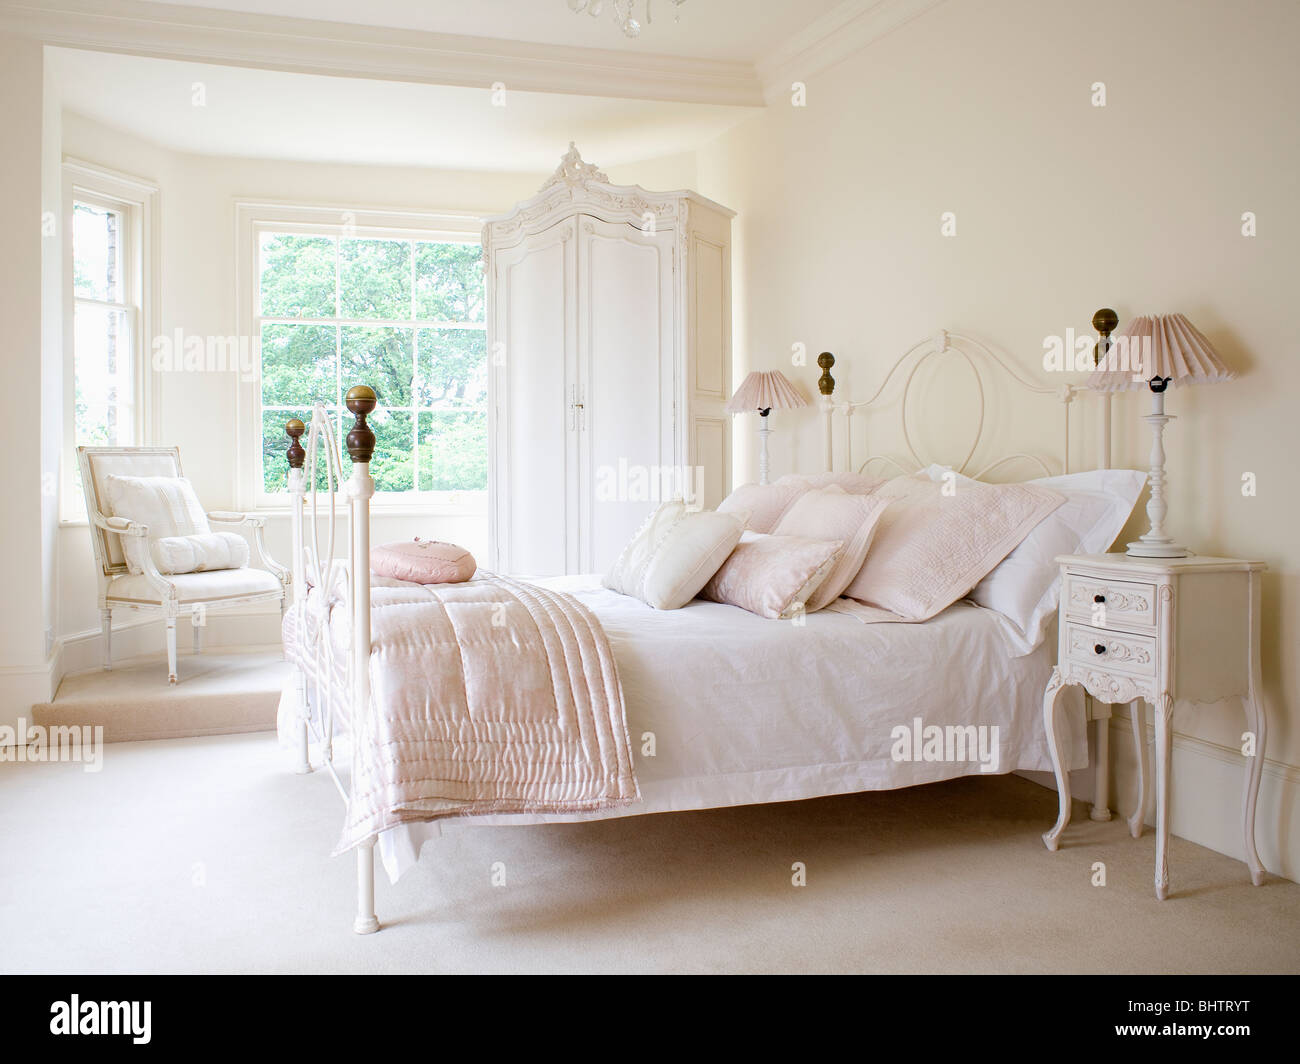 Cream Colored Bunk Beds Pale Pink Silk Quilt And White Bedlinen On White Wrought